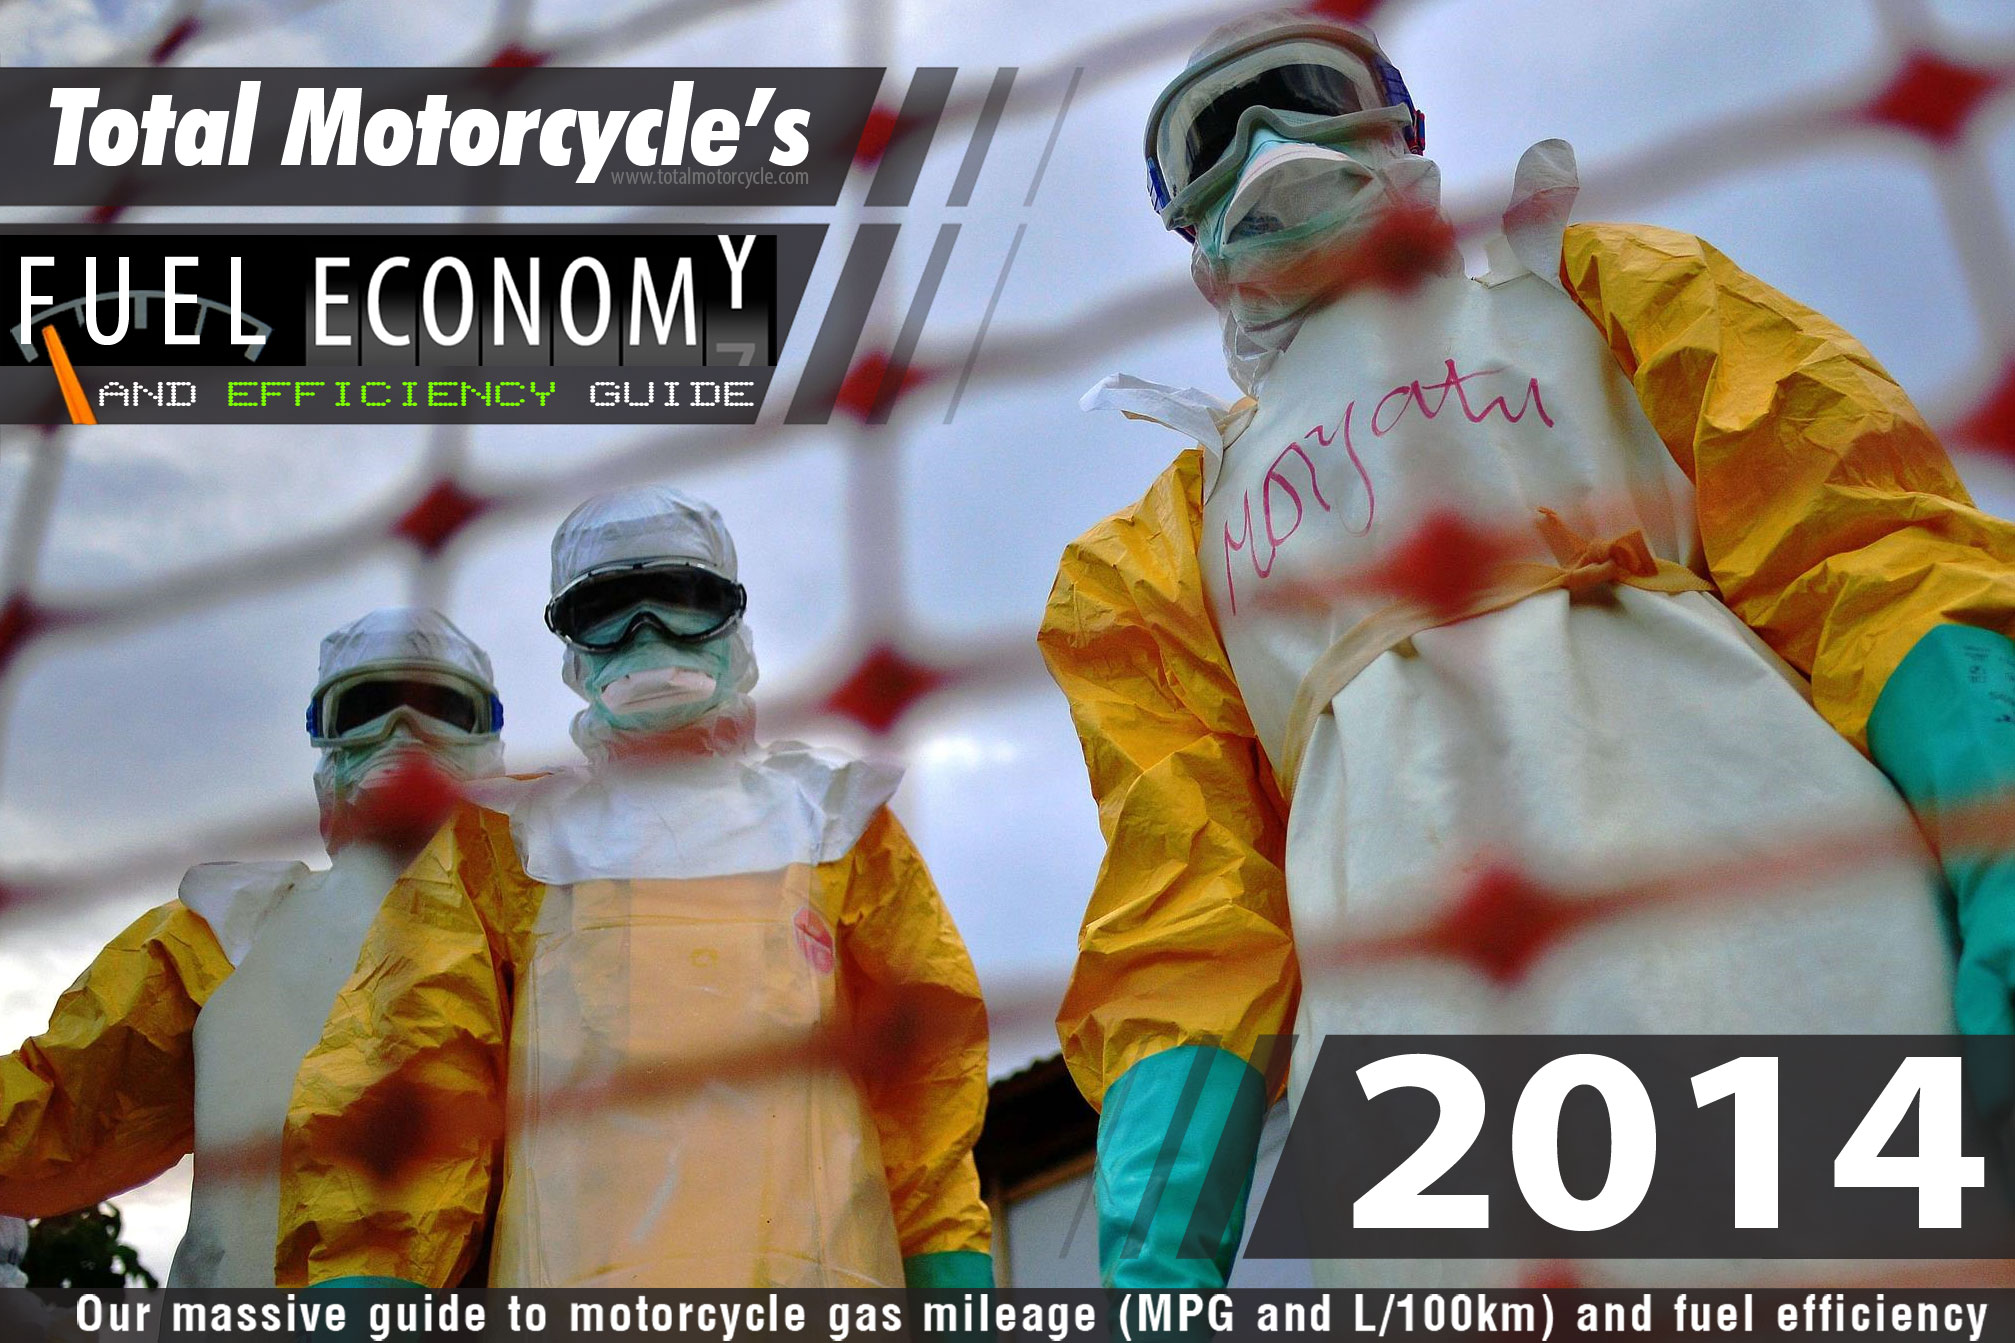 2014 motorcycle model fuel economy guide in mpg and l/100km - page 2